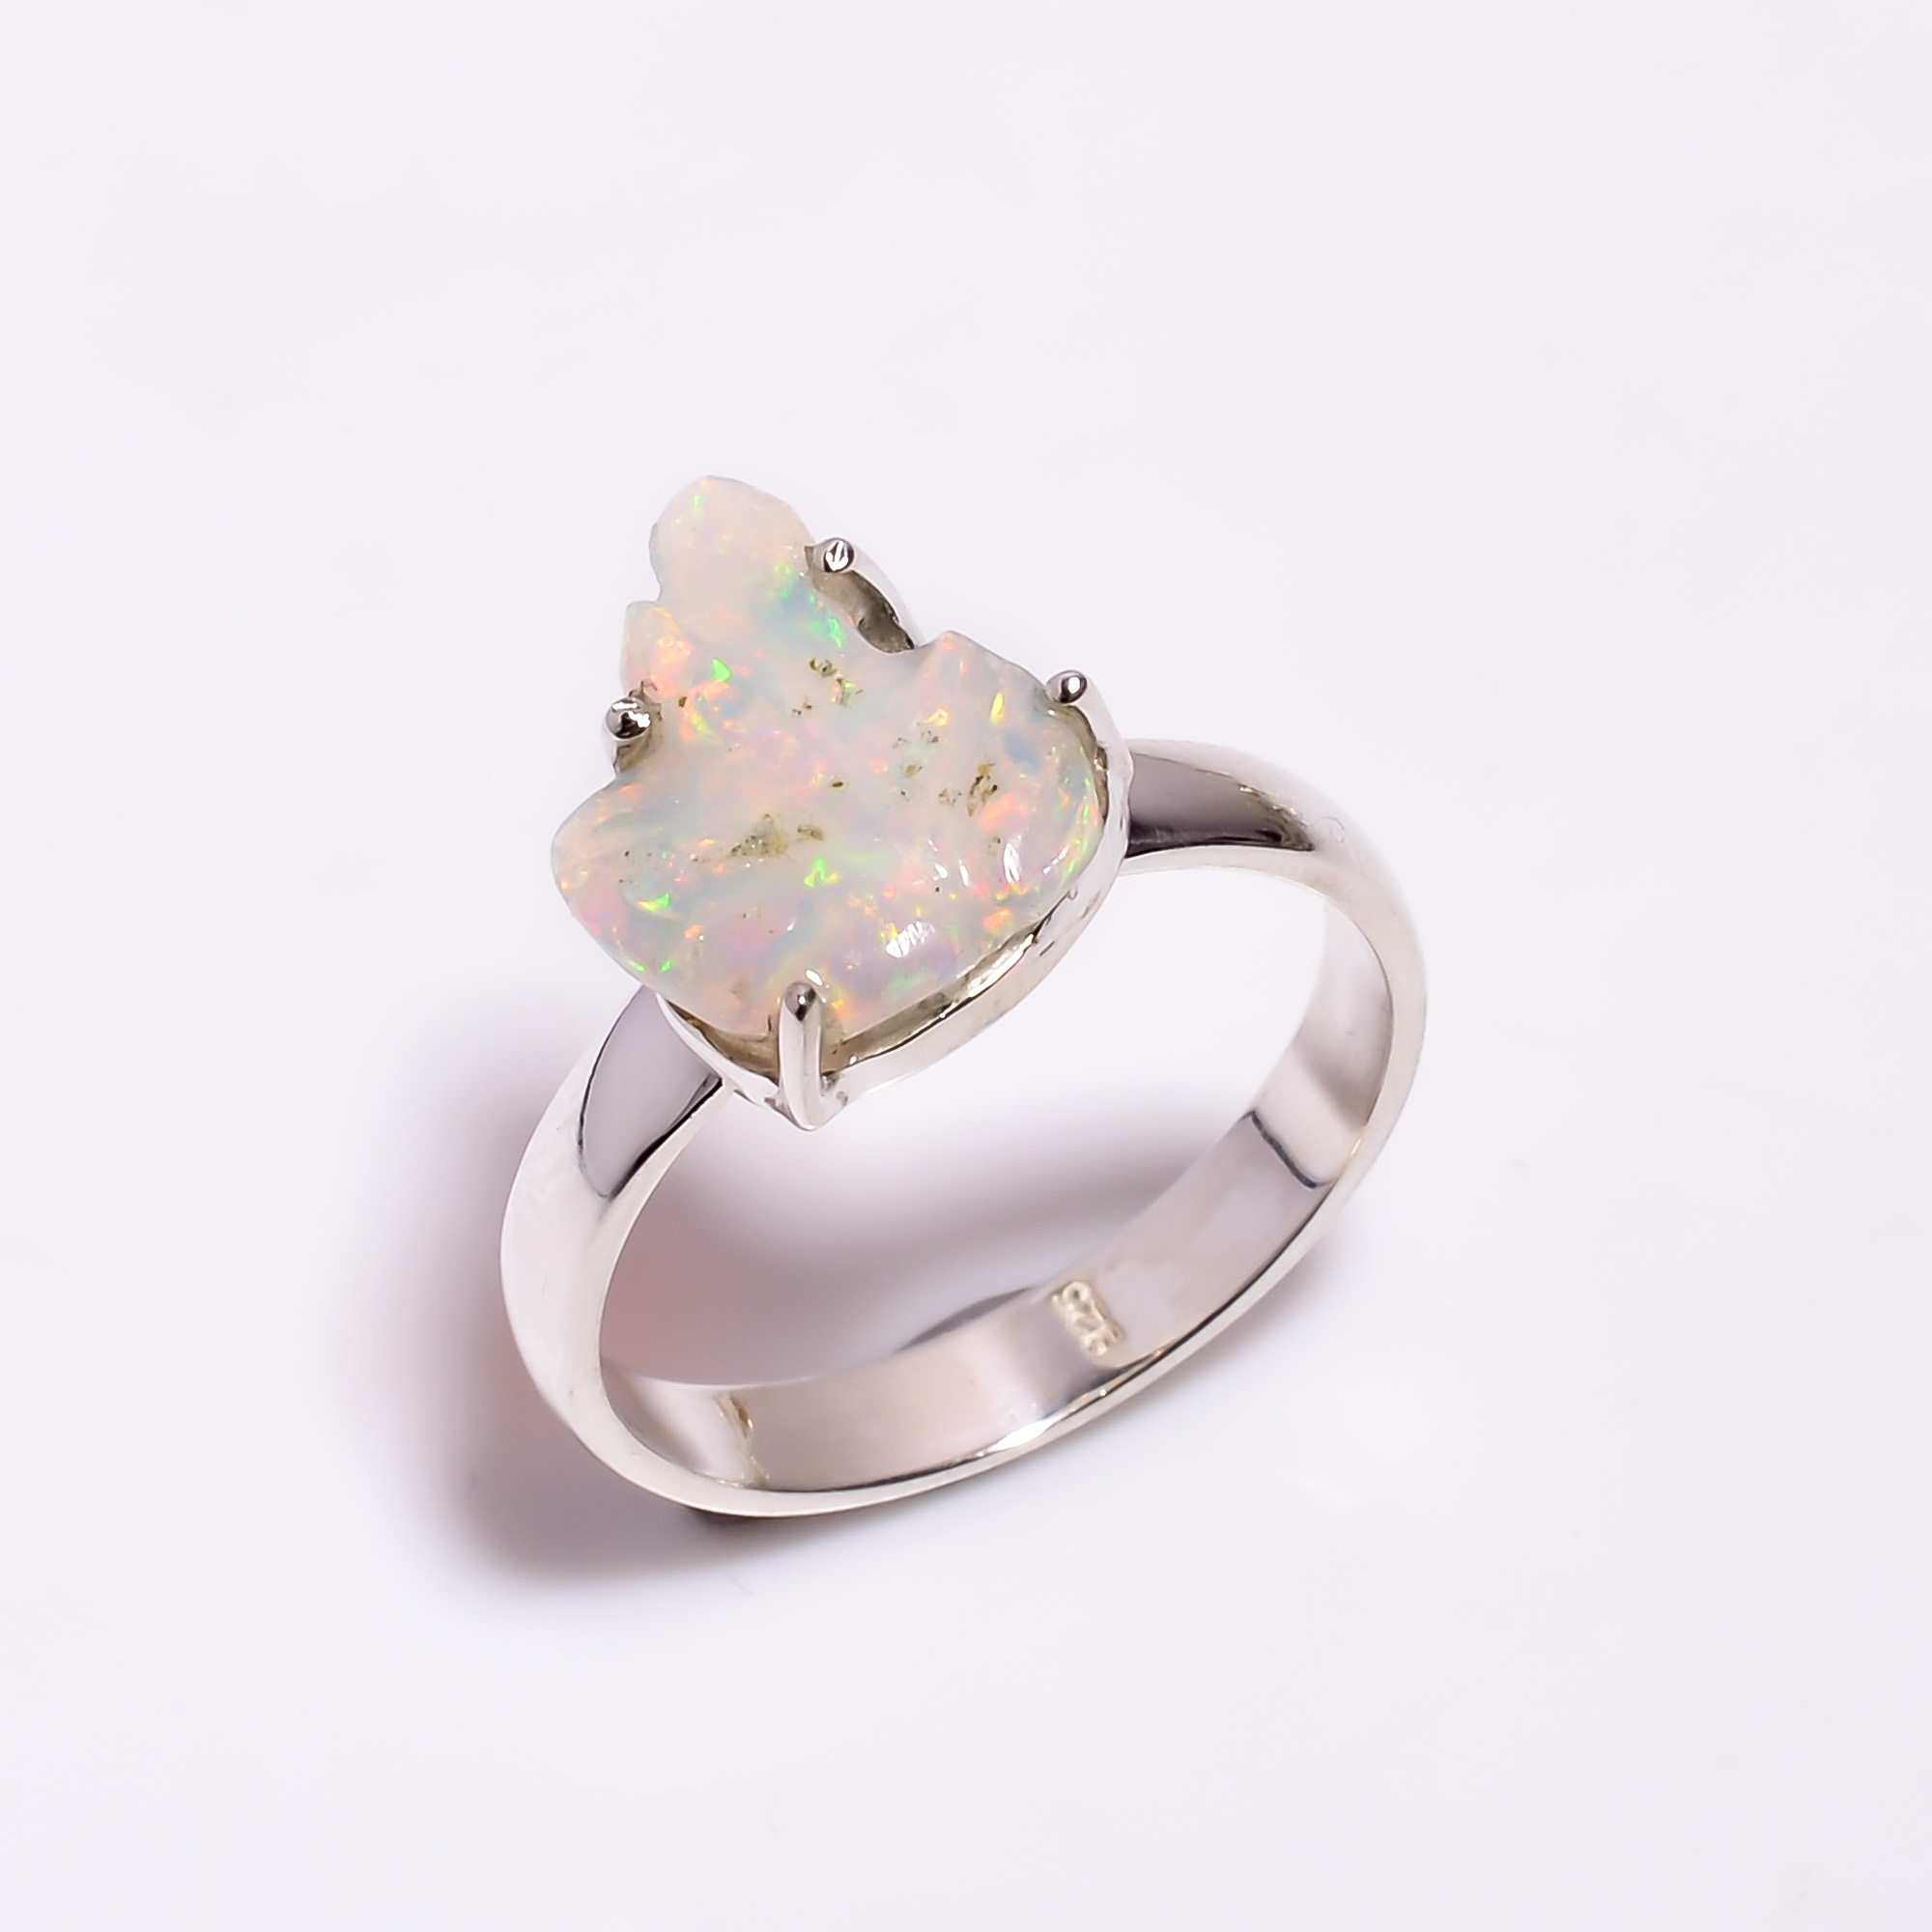 Multi Fire Play Ethiopian Opal Carved Gemstone 925 Sterling Silver Ring Size US 7.75